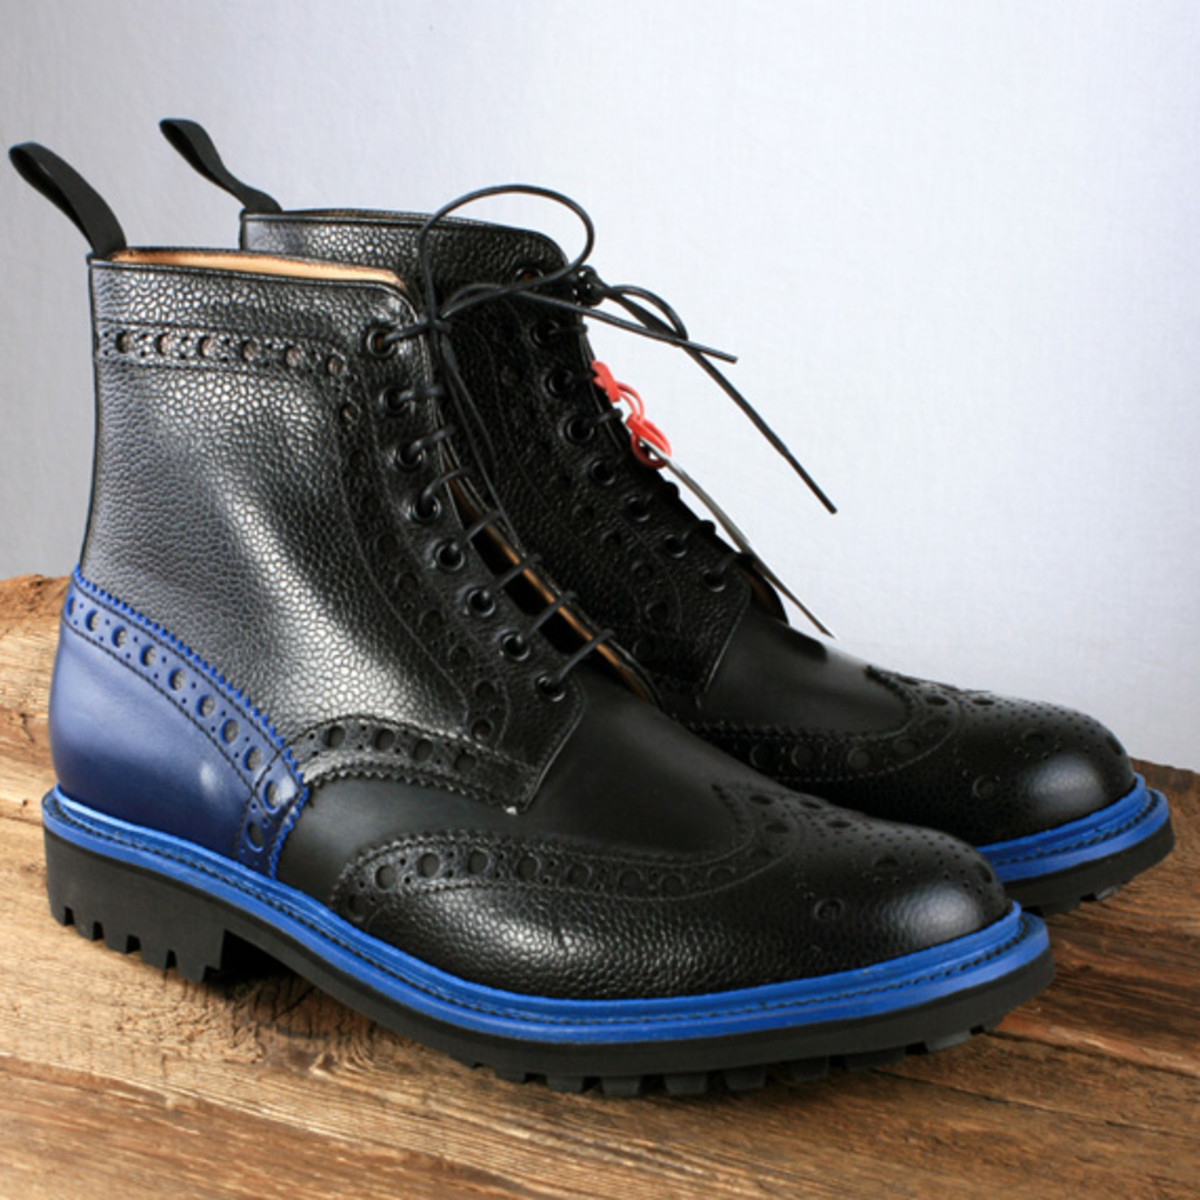 Togs Clogs X Grenson Fred Brogue Boots With Commando